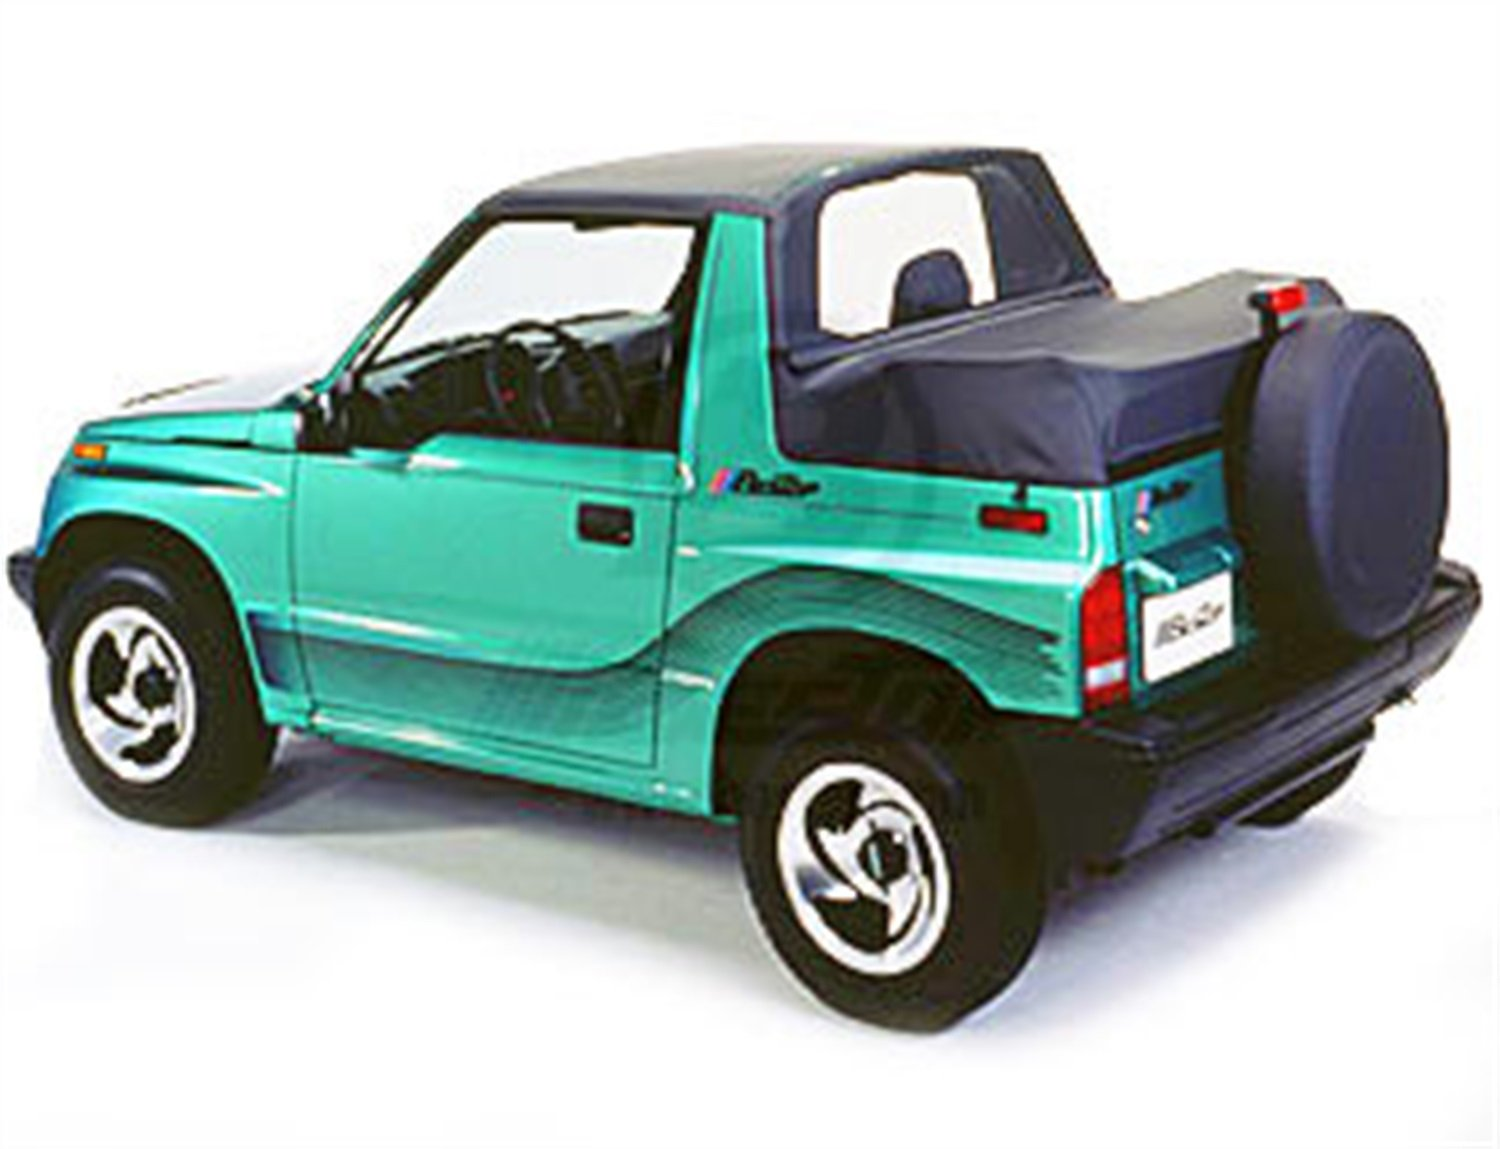 Amazon.com: Bestop 80062-15 Black Denim Windjammer Wind Break for 1995-1998  Suzuki Sidekick/Geo Tracker: Automotive